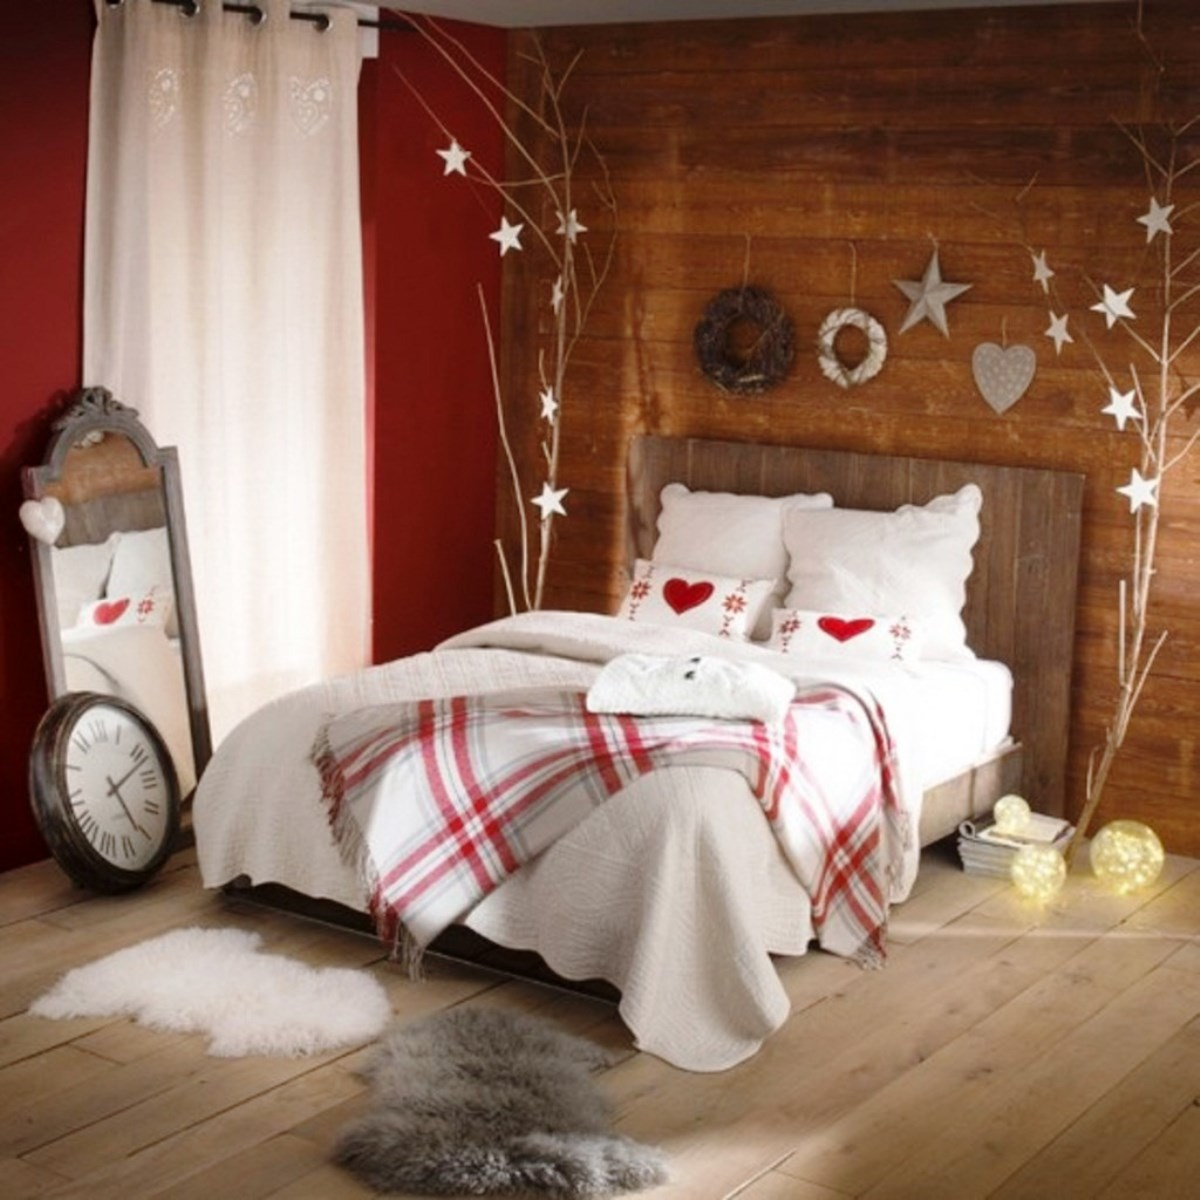 30 Wall Decor Ideas For Your Home: 30 Christmas Bedroom Decorations Ideas